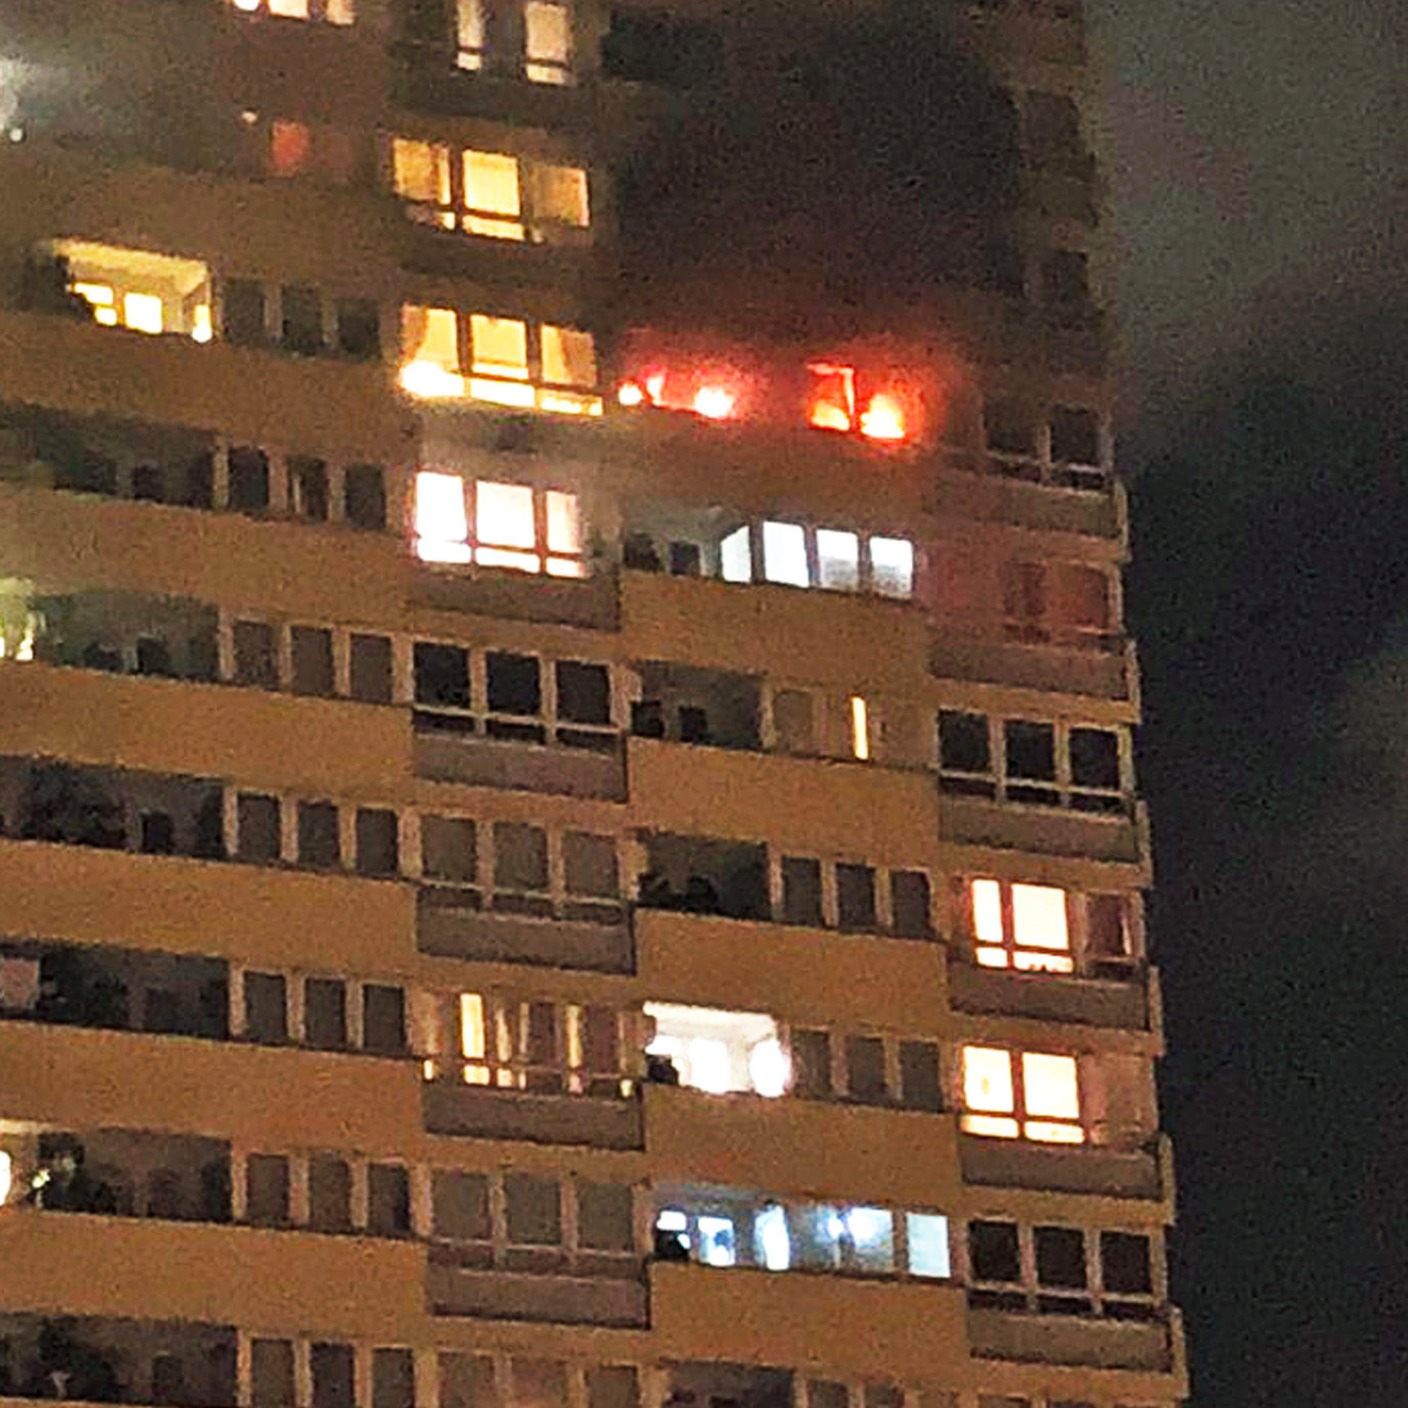 100 people flee homes after fire breaks out in 17th floor for 17th floor